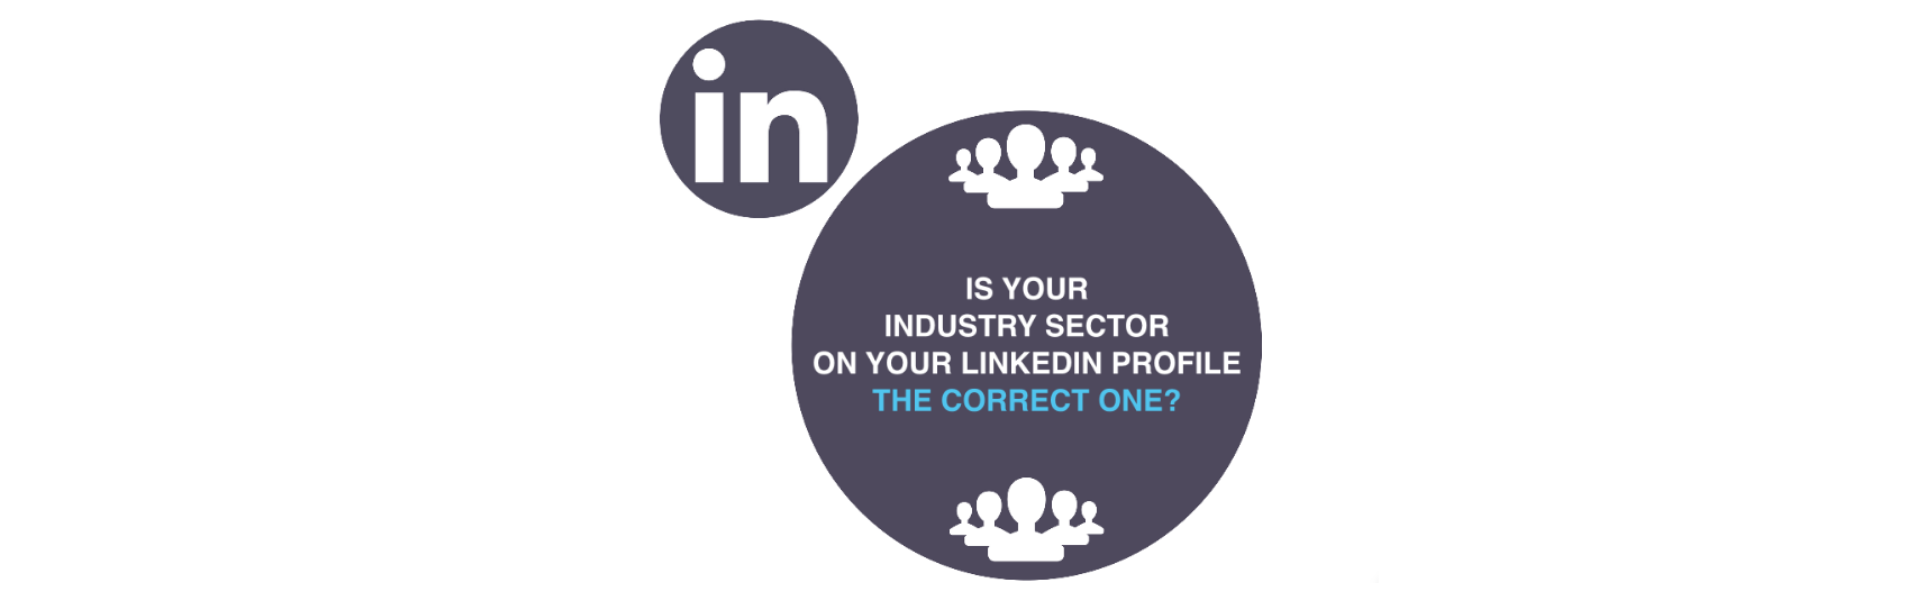 LinkedIn Industry Sector List Guide